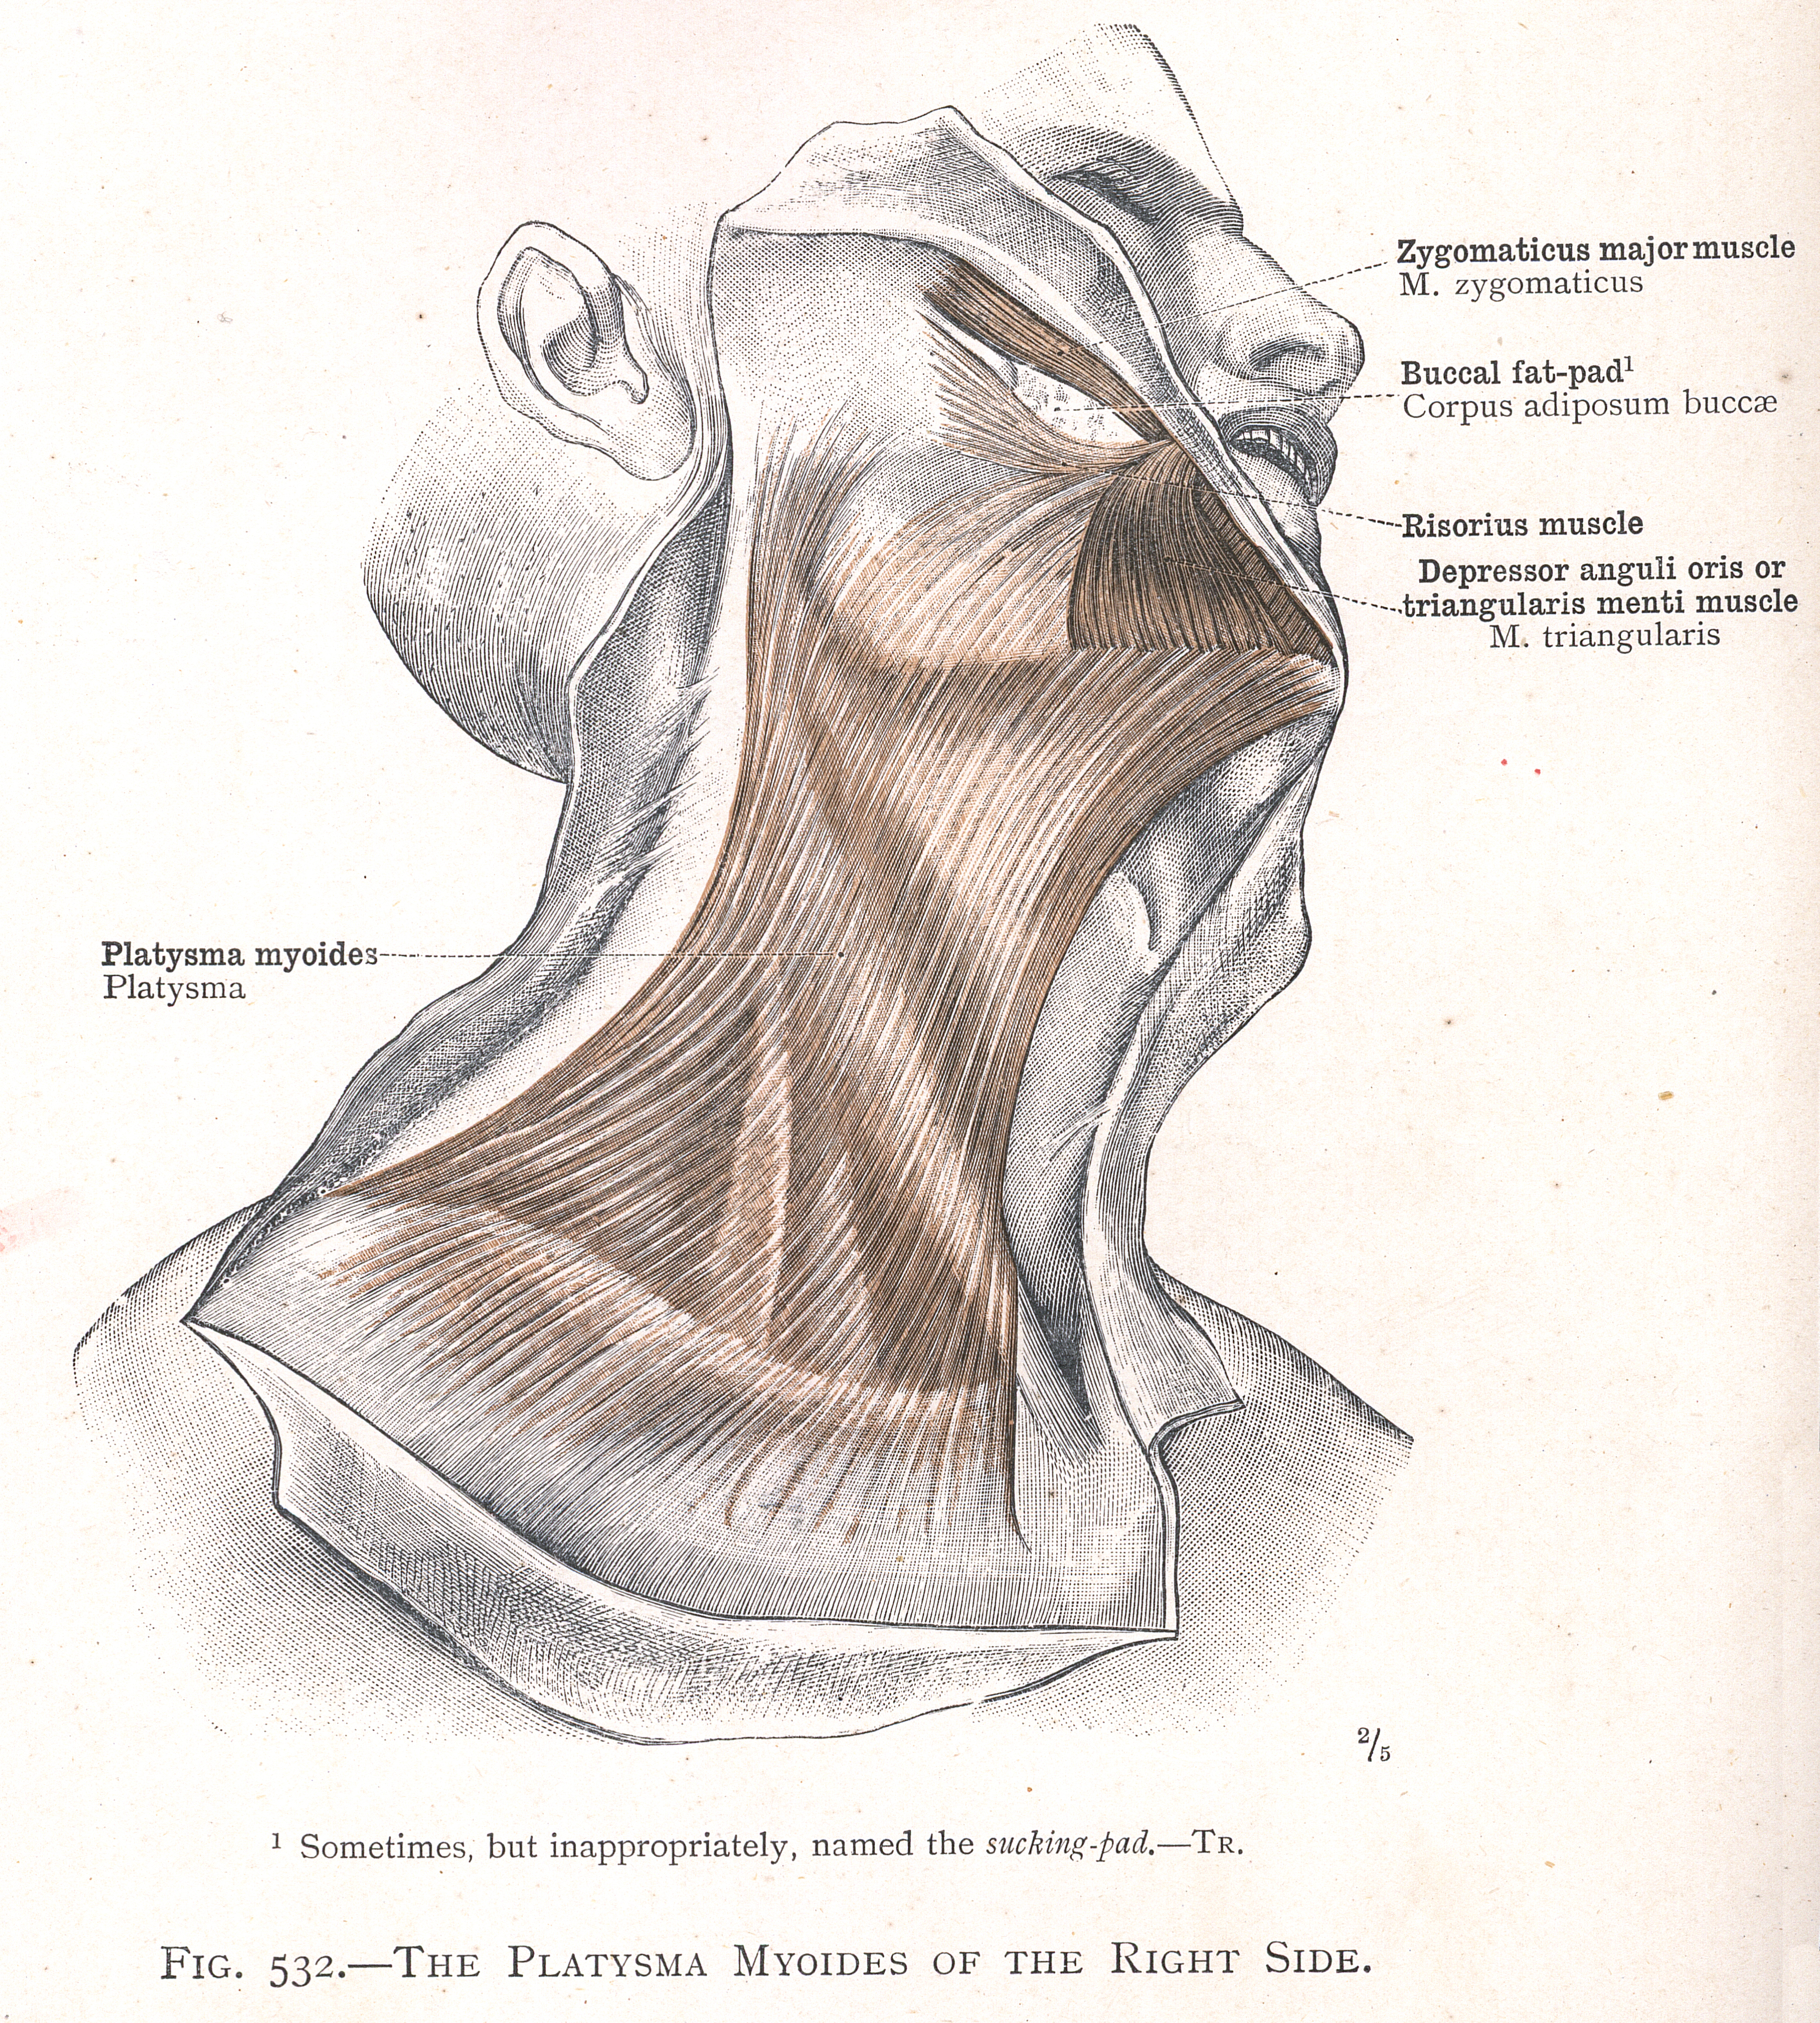 532 The Platysma Myoides Of The Right Side